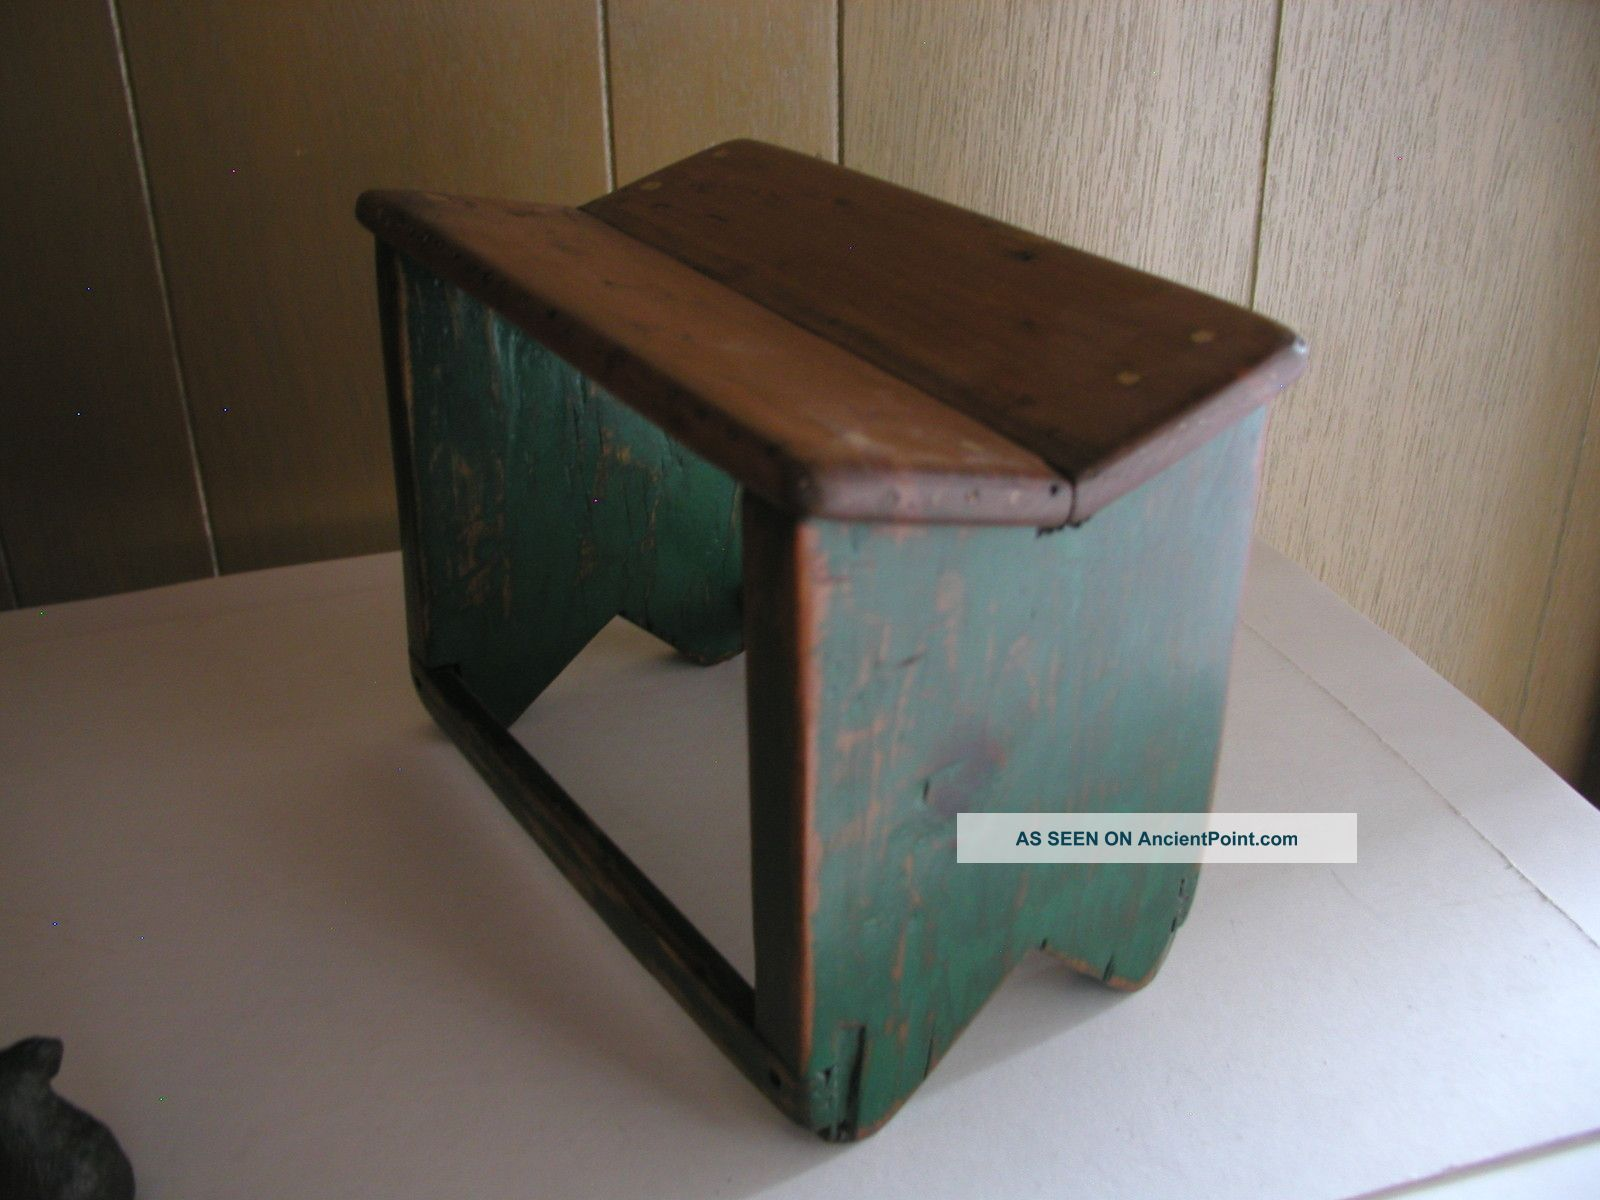 Superb img of Antique Wooden Step Stool / Foot Stool Stained Painted Green Unknown  with #2F281C color and 1600x1200 pixels